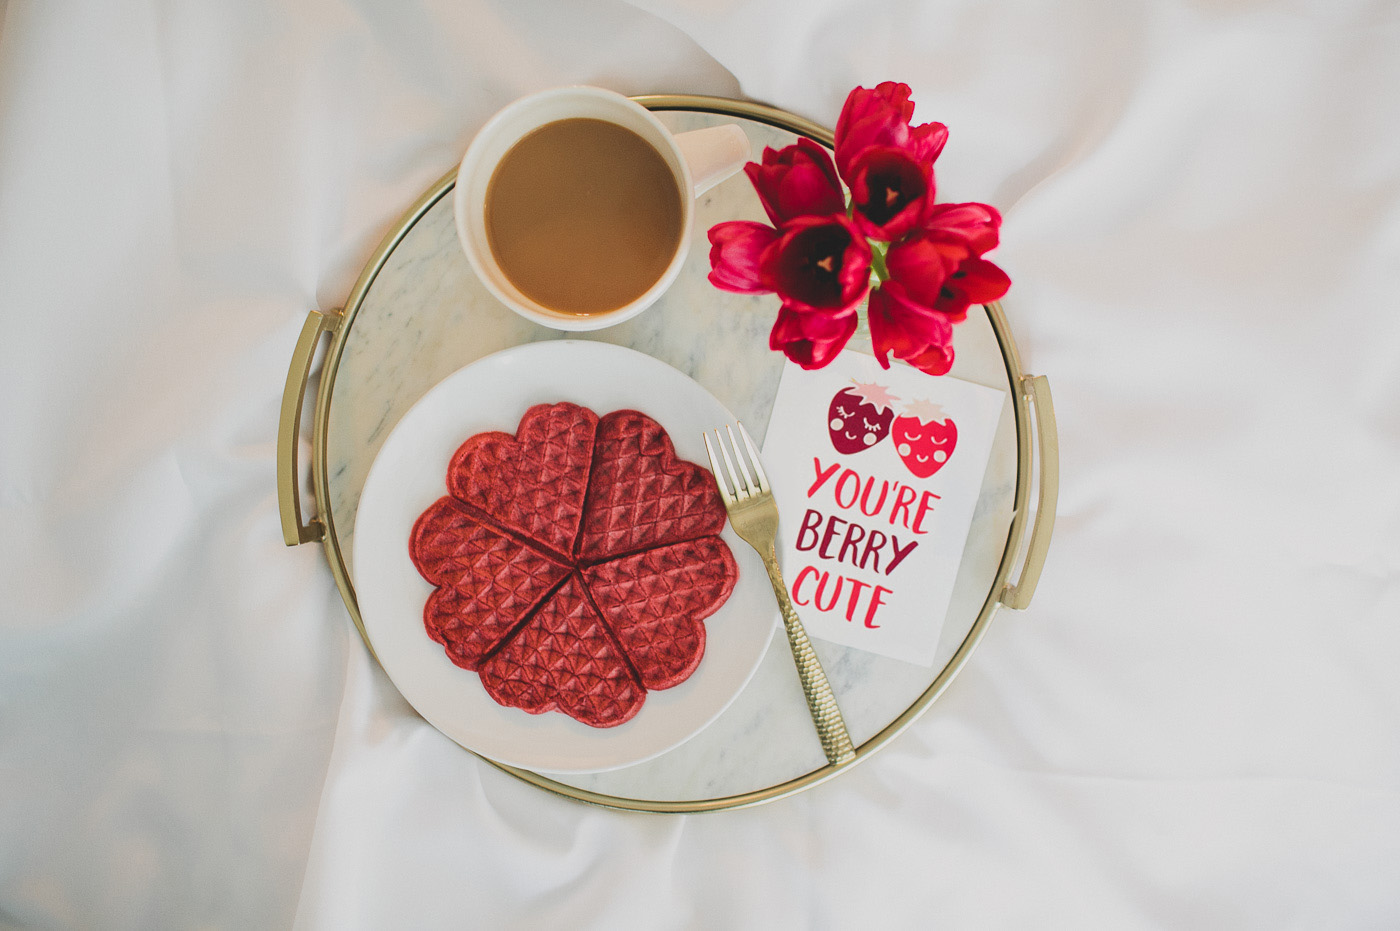 Valentine's Morning Breakfast in Bed with a cheeky love note!